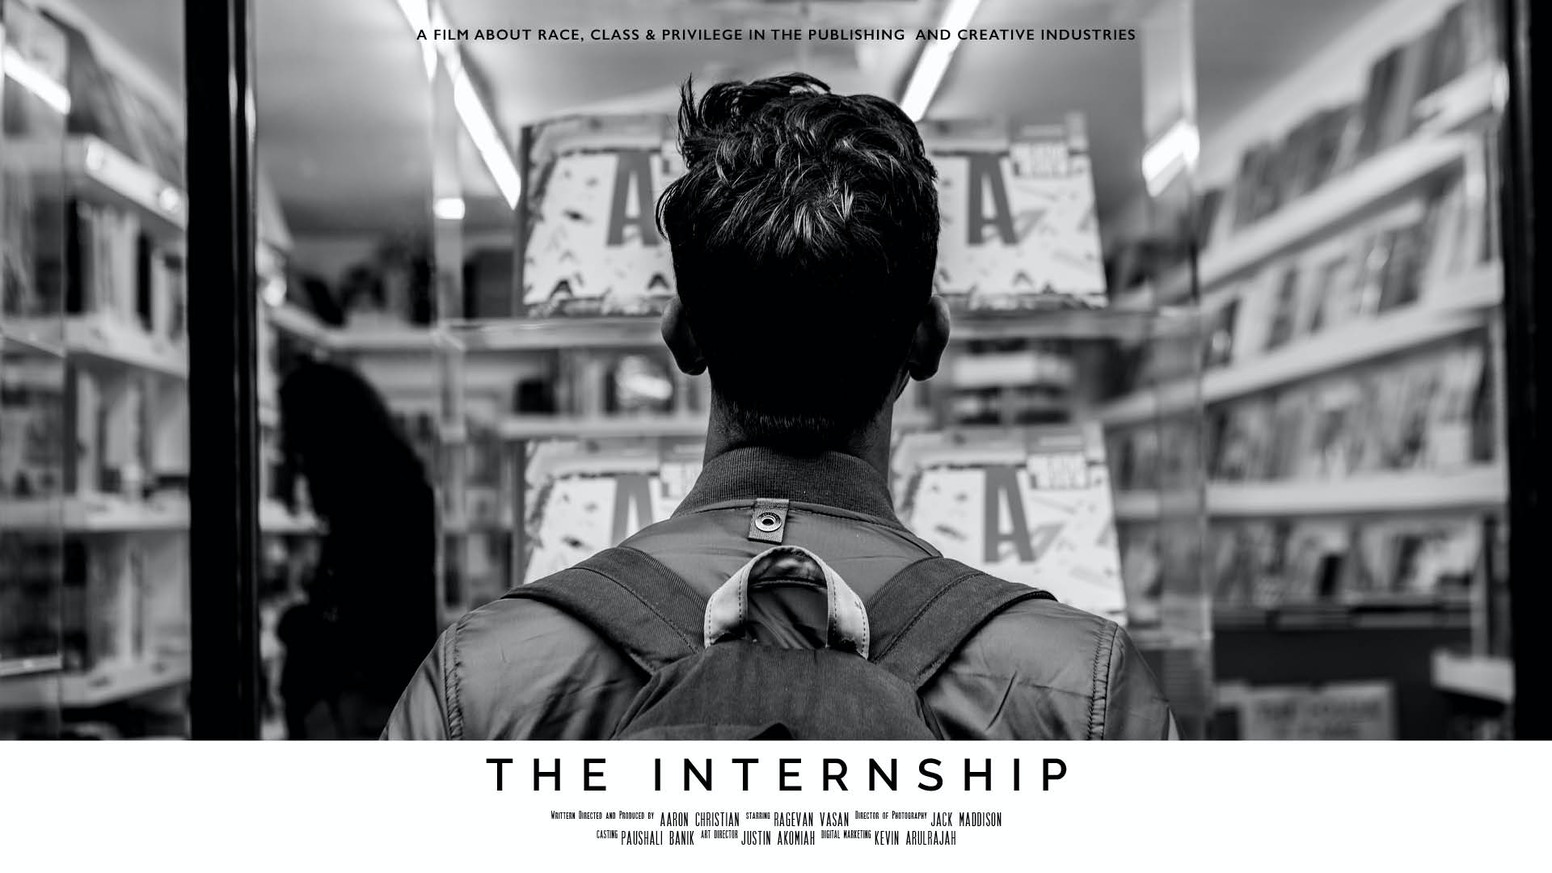 A short film about race, class and privilege within the publishing industry.